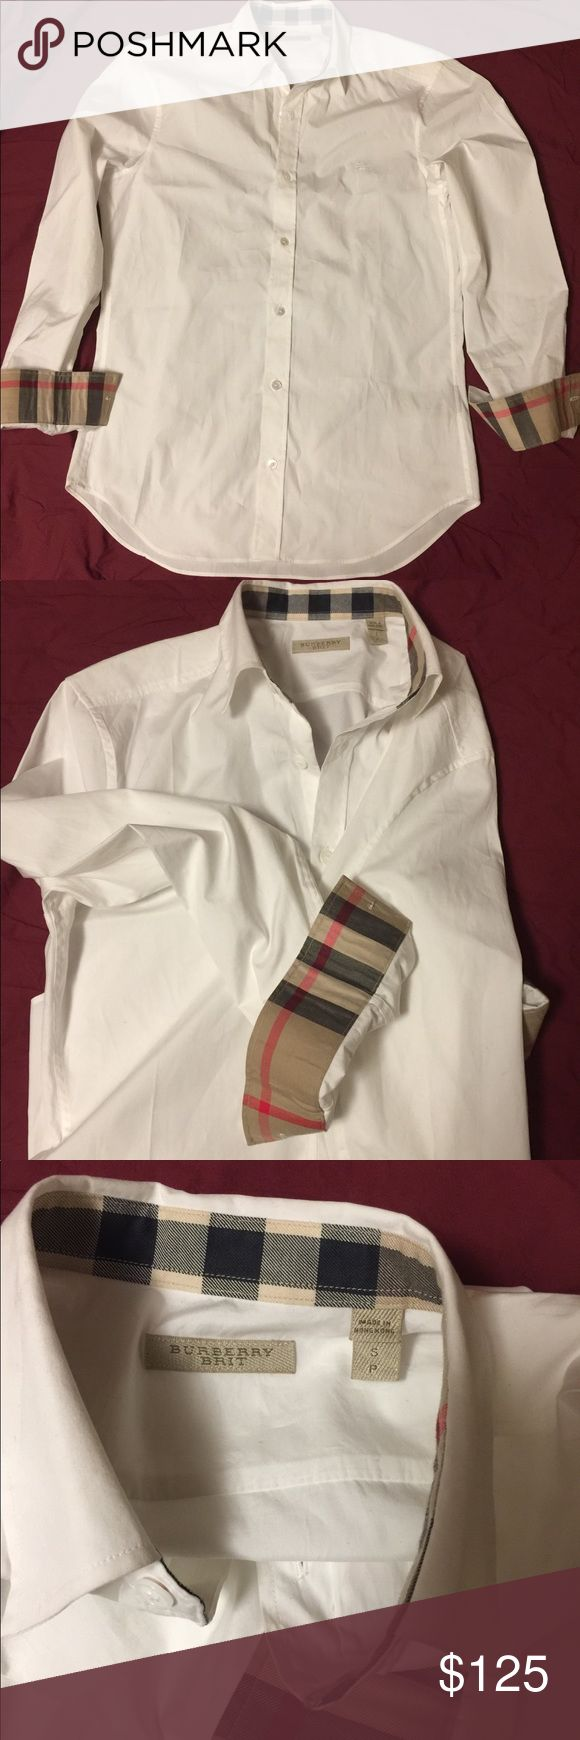 Burberry Brit Shirt for Men's Size Small Authentic white brand new Burberry Brit shirt size Small. No tags Burberry Shirts Dress Shirts